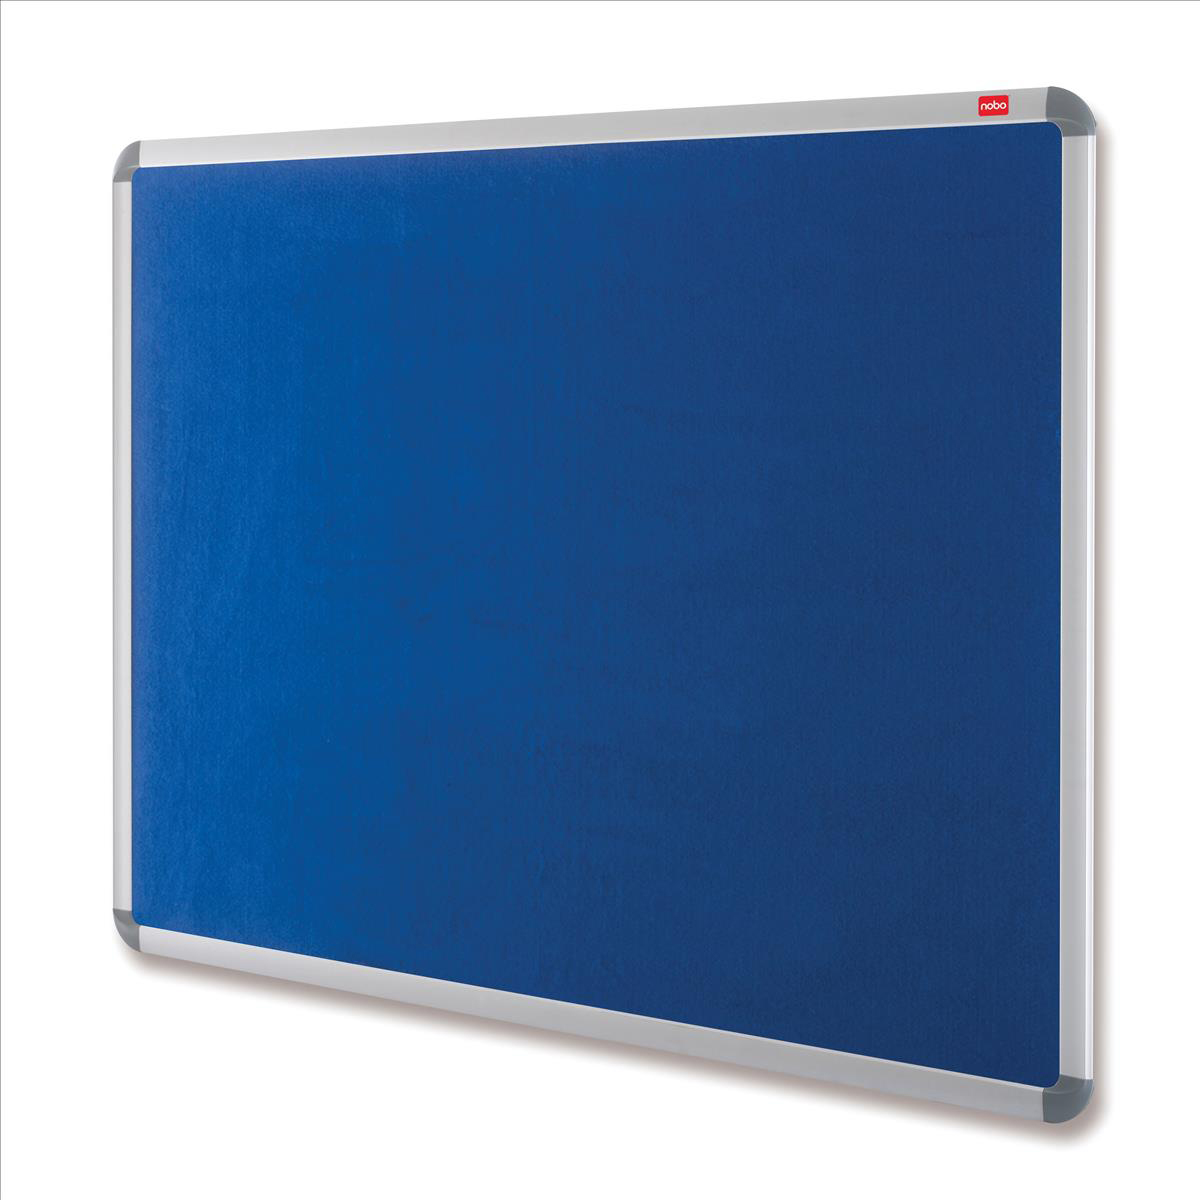 Image for **Nobo EuroPlus Felt Noticeboard with Fixings and Aluminium Frame W1500xH1000mm Blue Ref 30234148